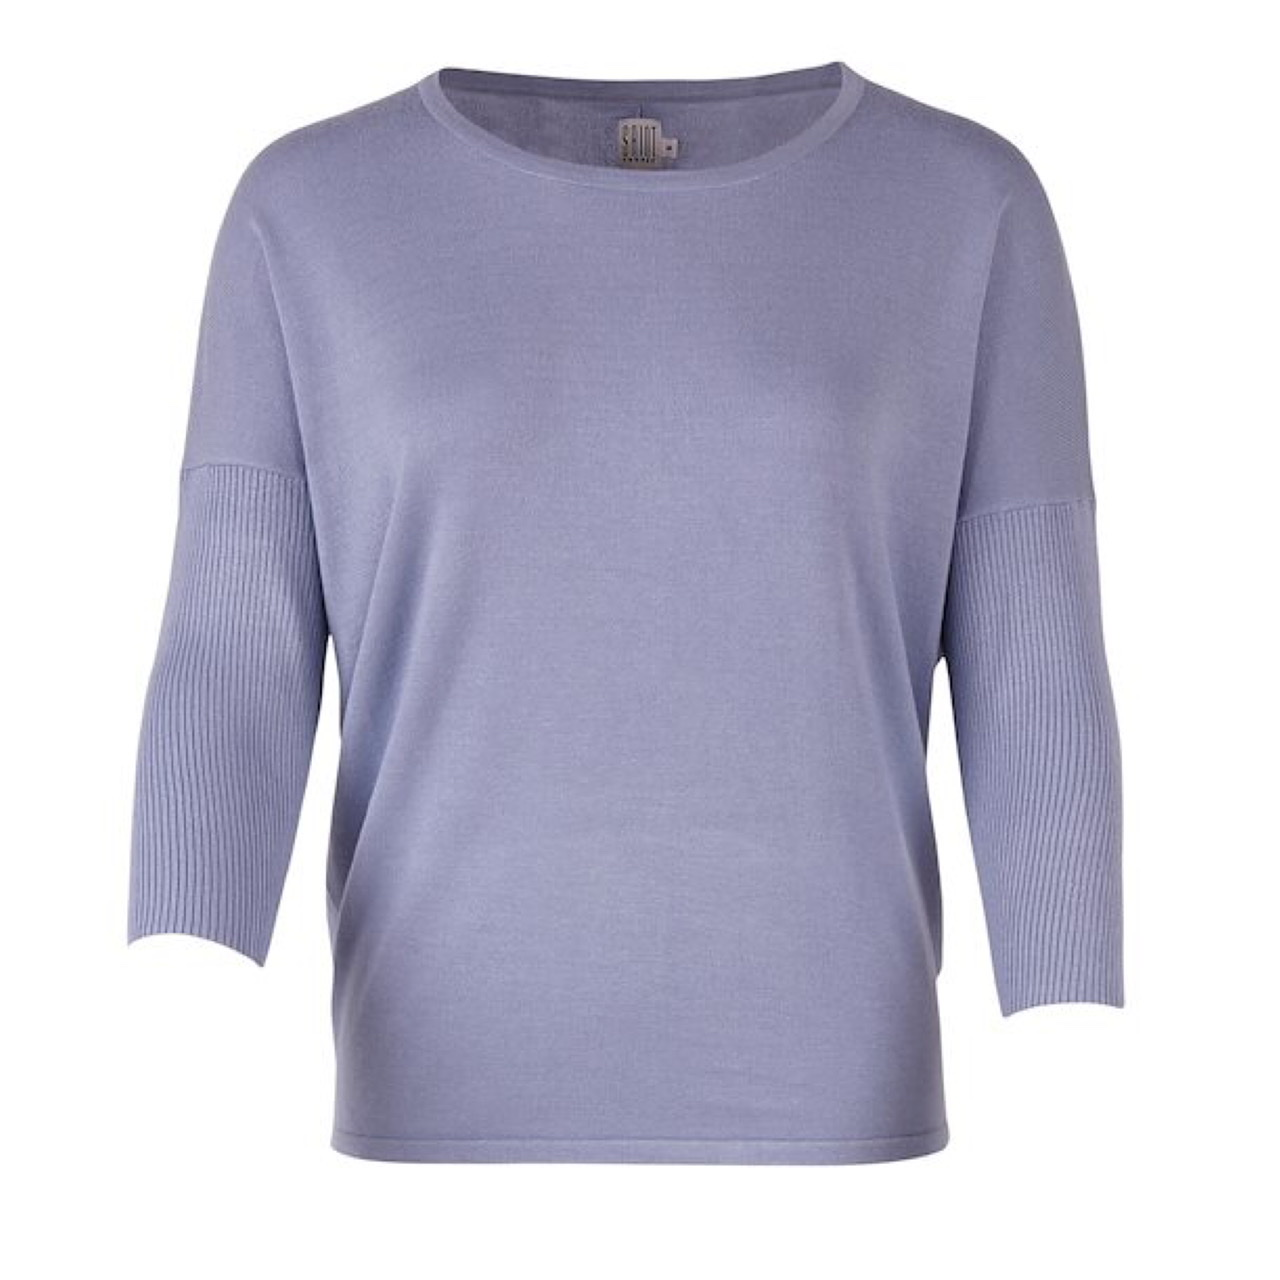 Lilac Mila Knit by Saint Tropez